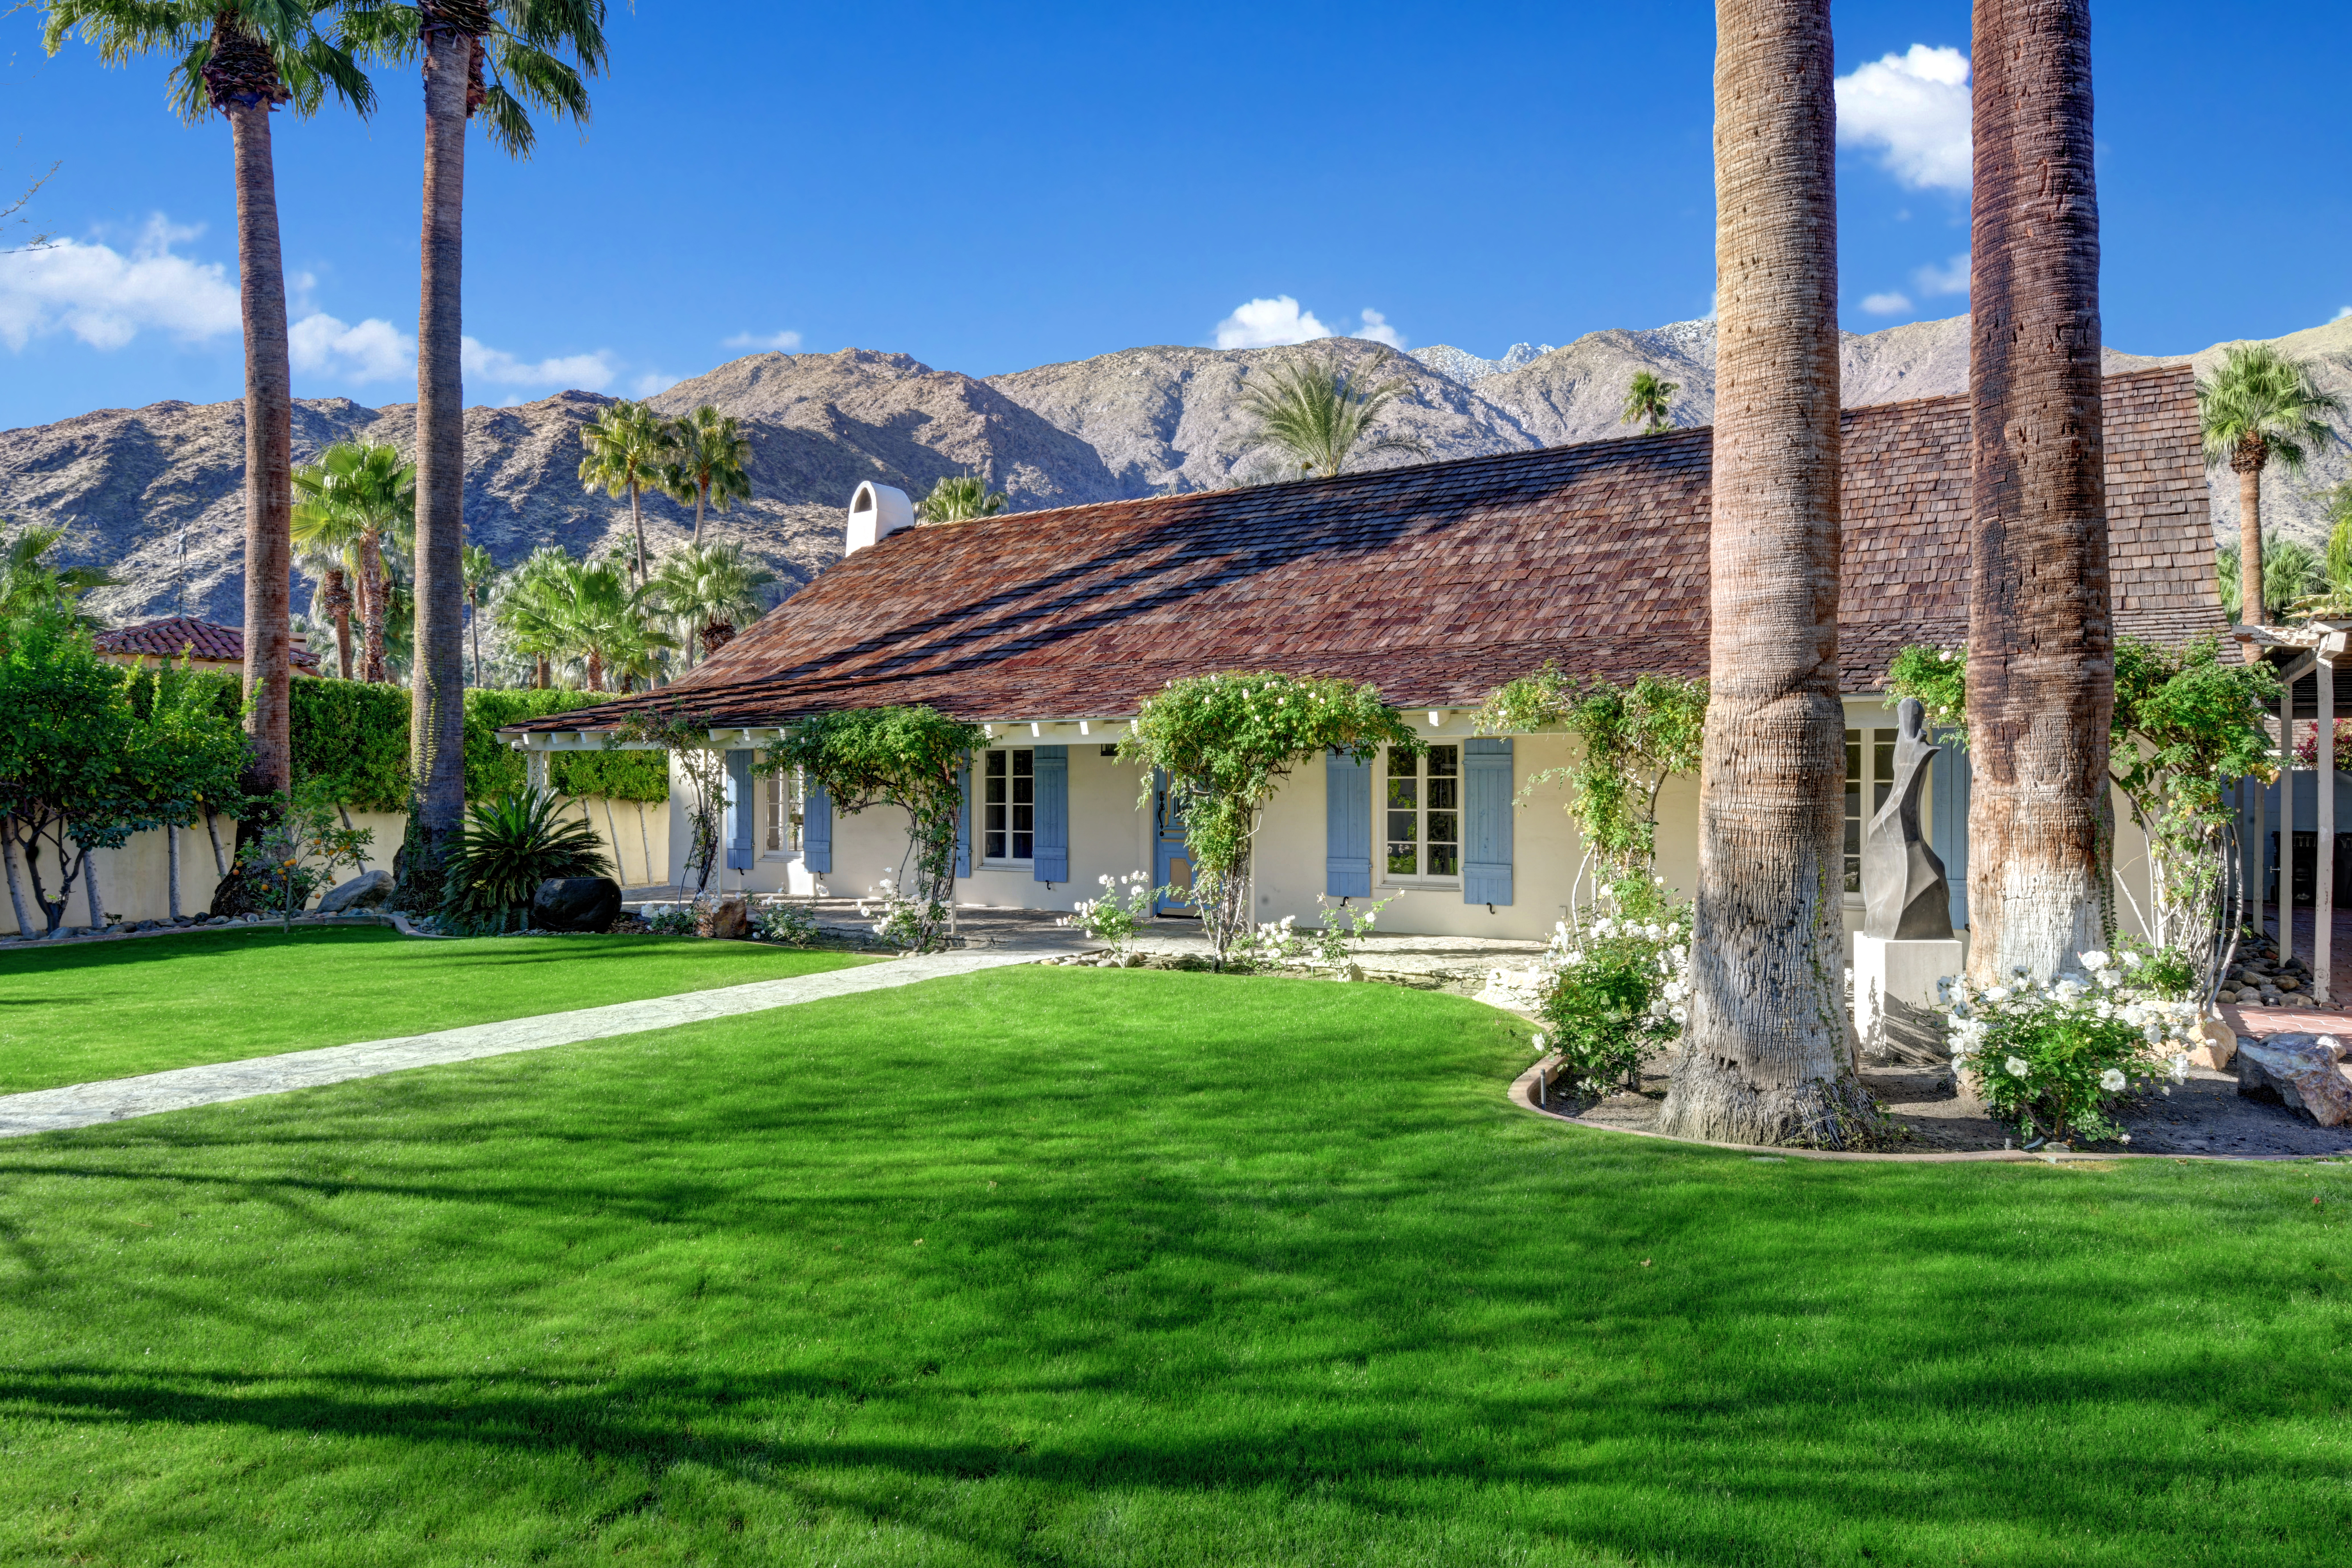 A ranch house with a low-slung roof and blue shutters sits in a large grassy lawn. Palm trees are in the front and mountains behind the cottage.